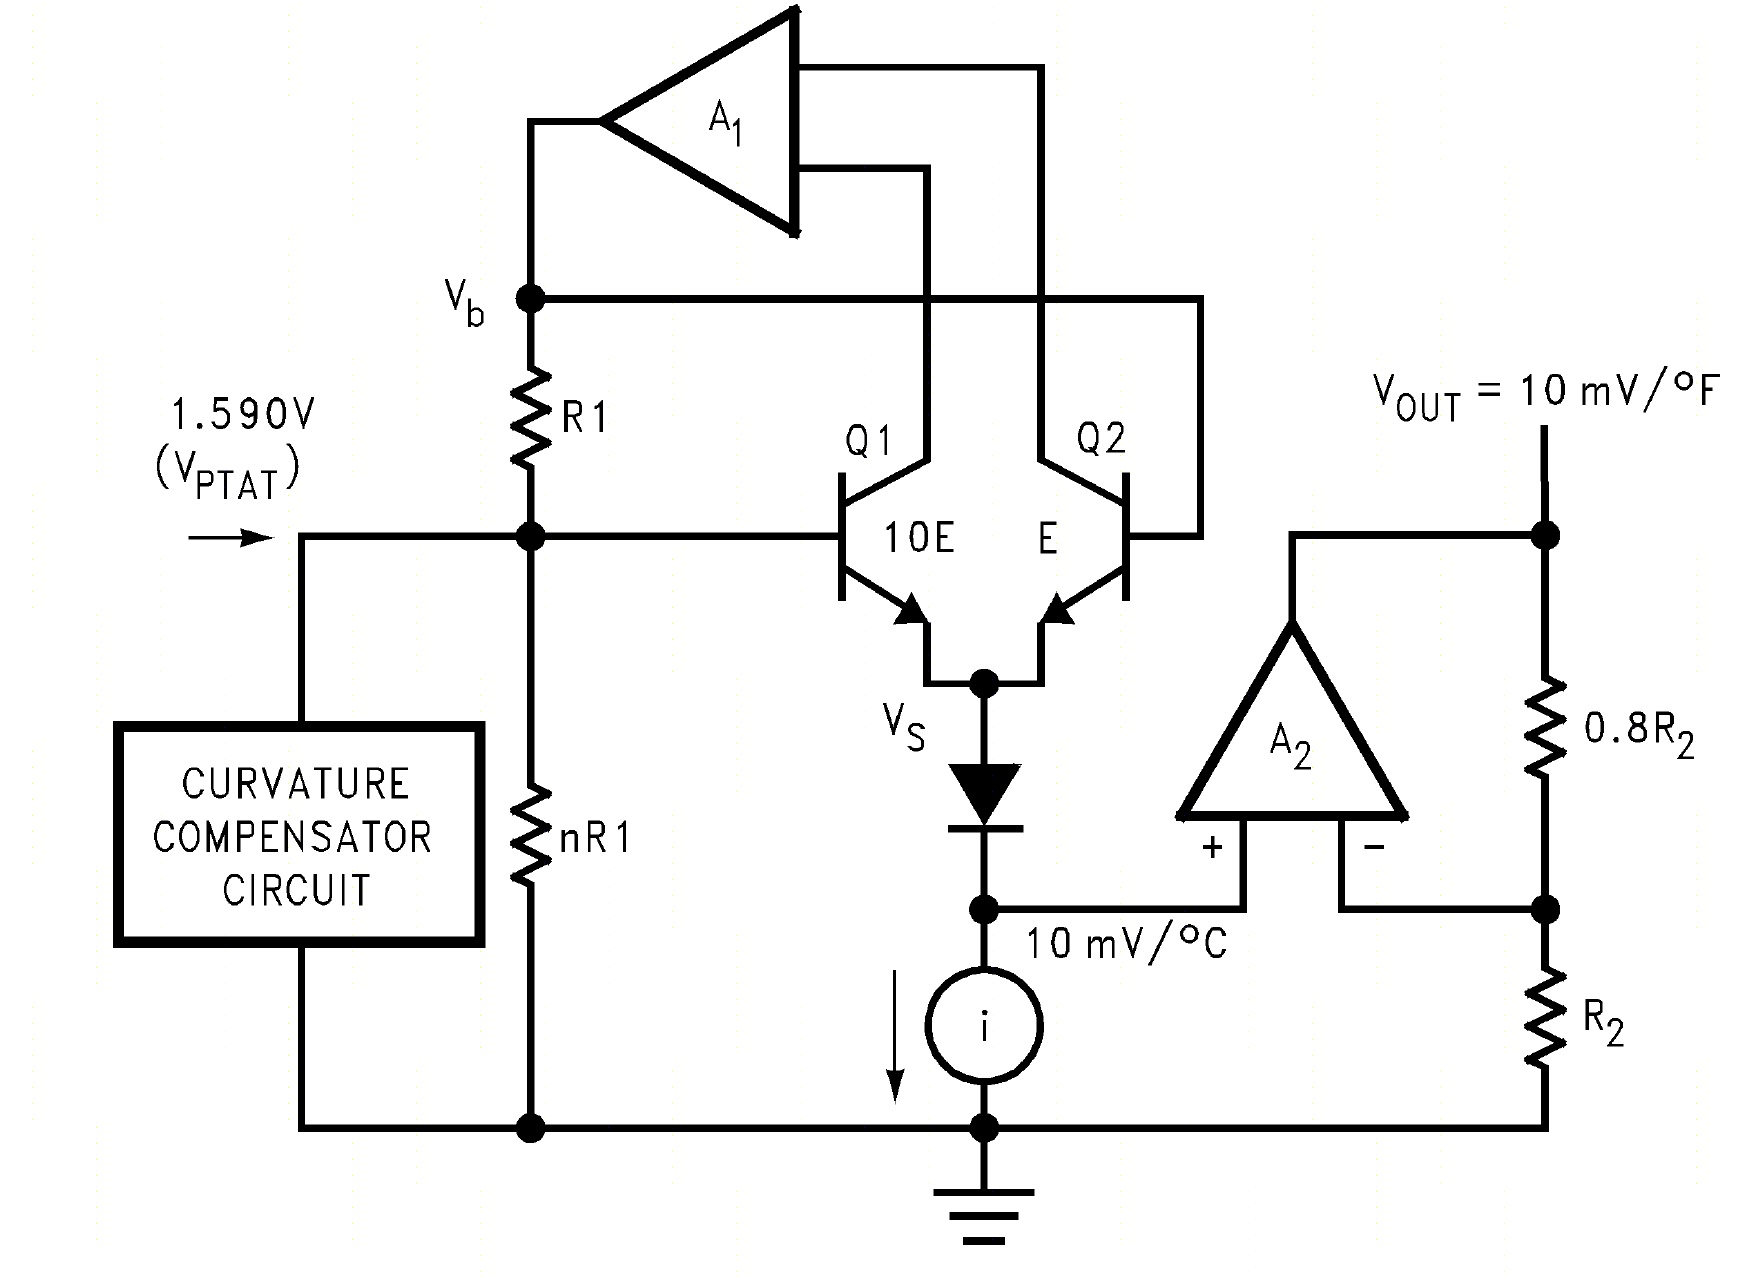 lm34_circuit_diagram chapter 10 computers and electronics homemade electronic  at bakdesigns.co